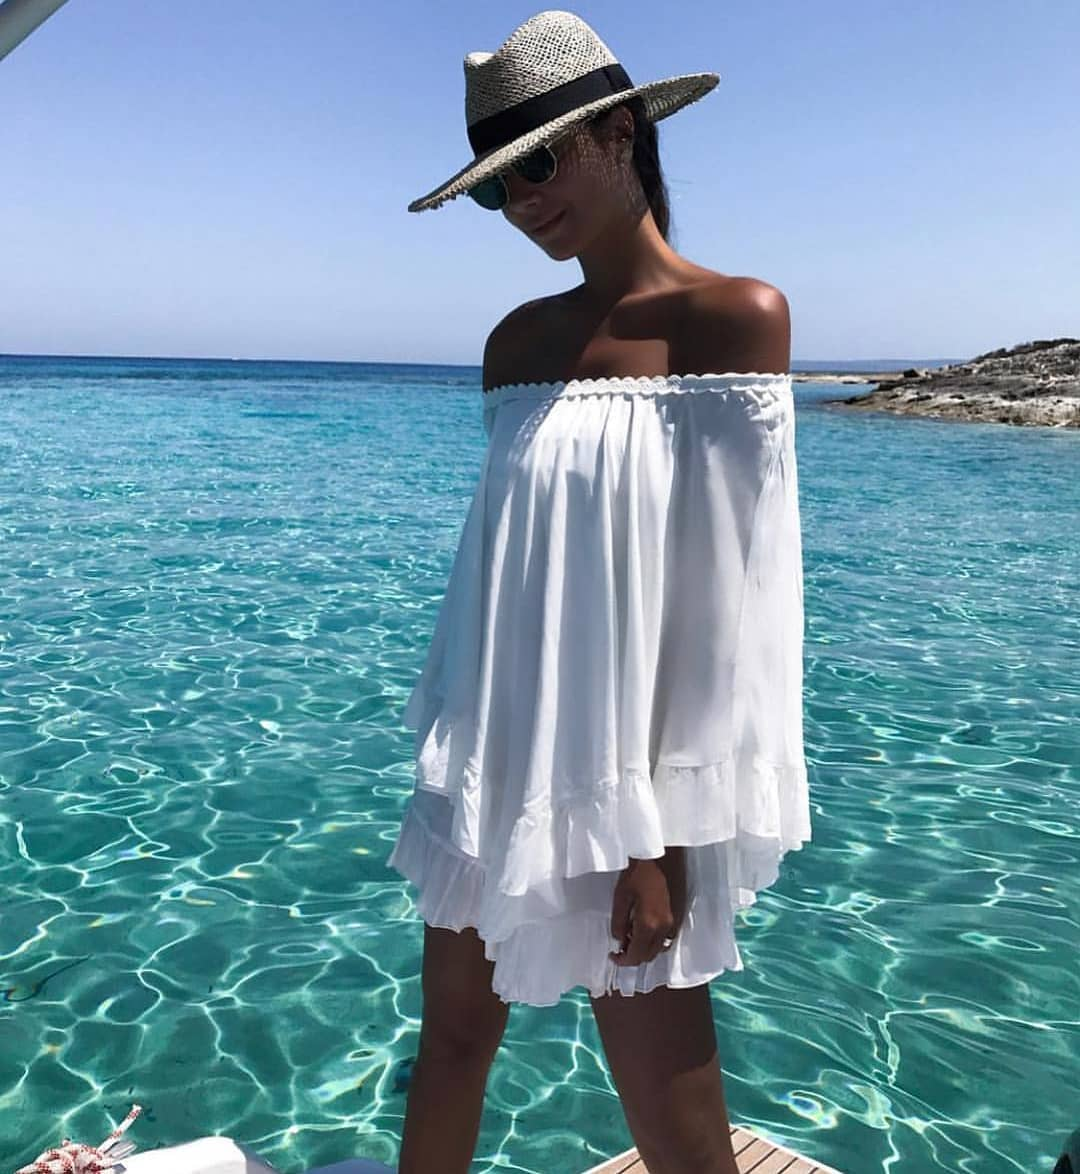 Off Shoulder White Tunic Dress With Pleated Ruffles For Summer Boat Trip 2021